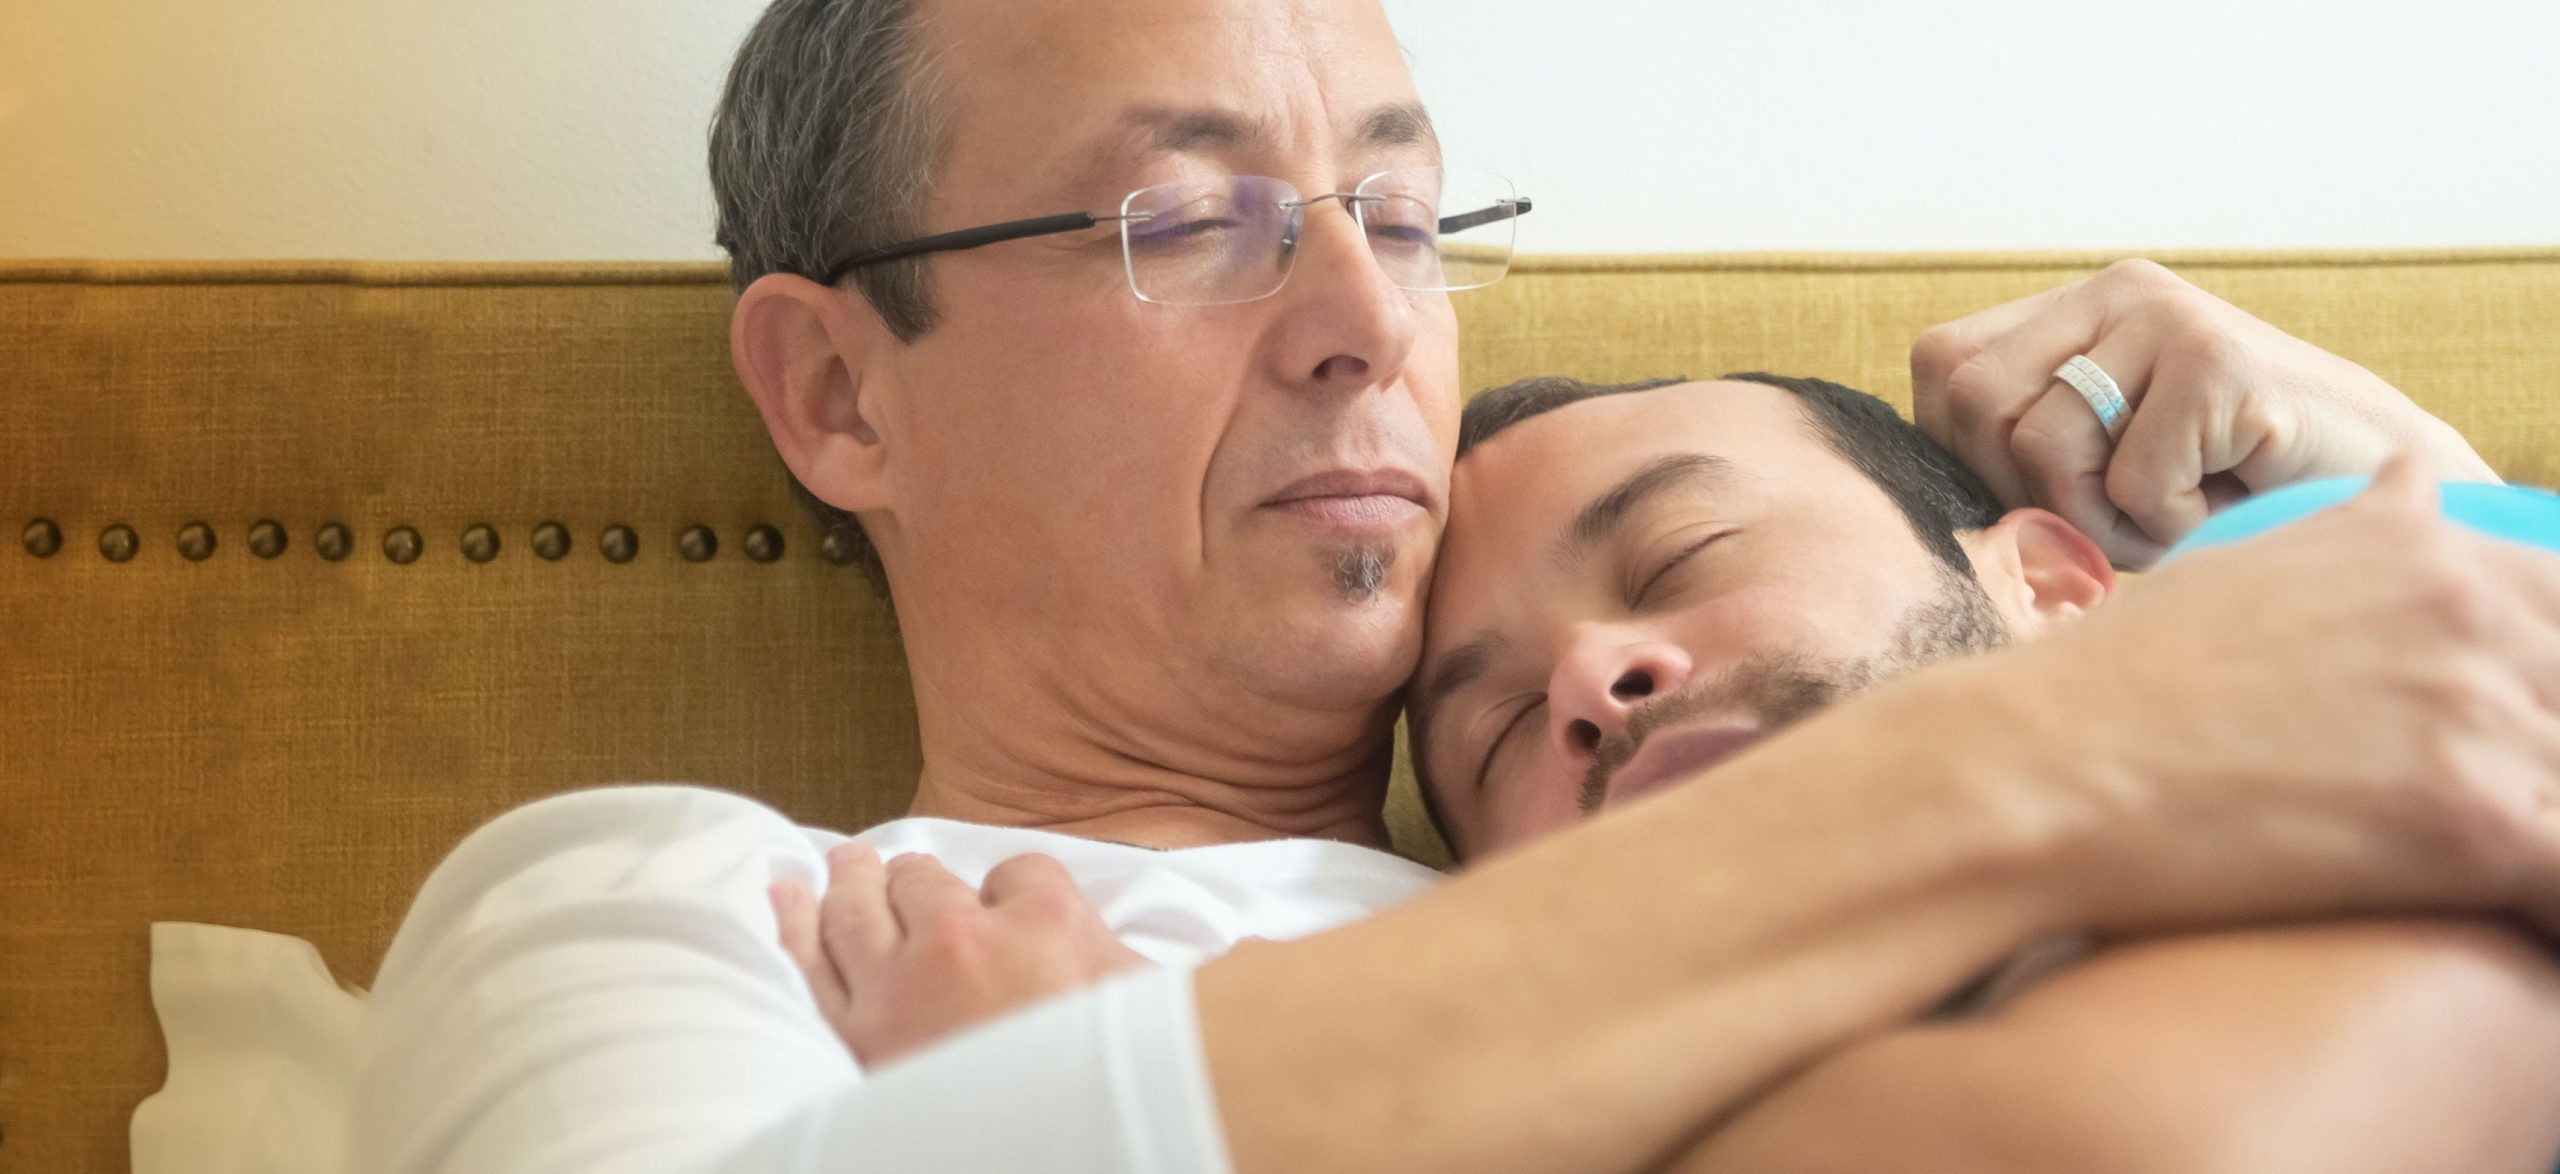 Two men embrace in a bed